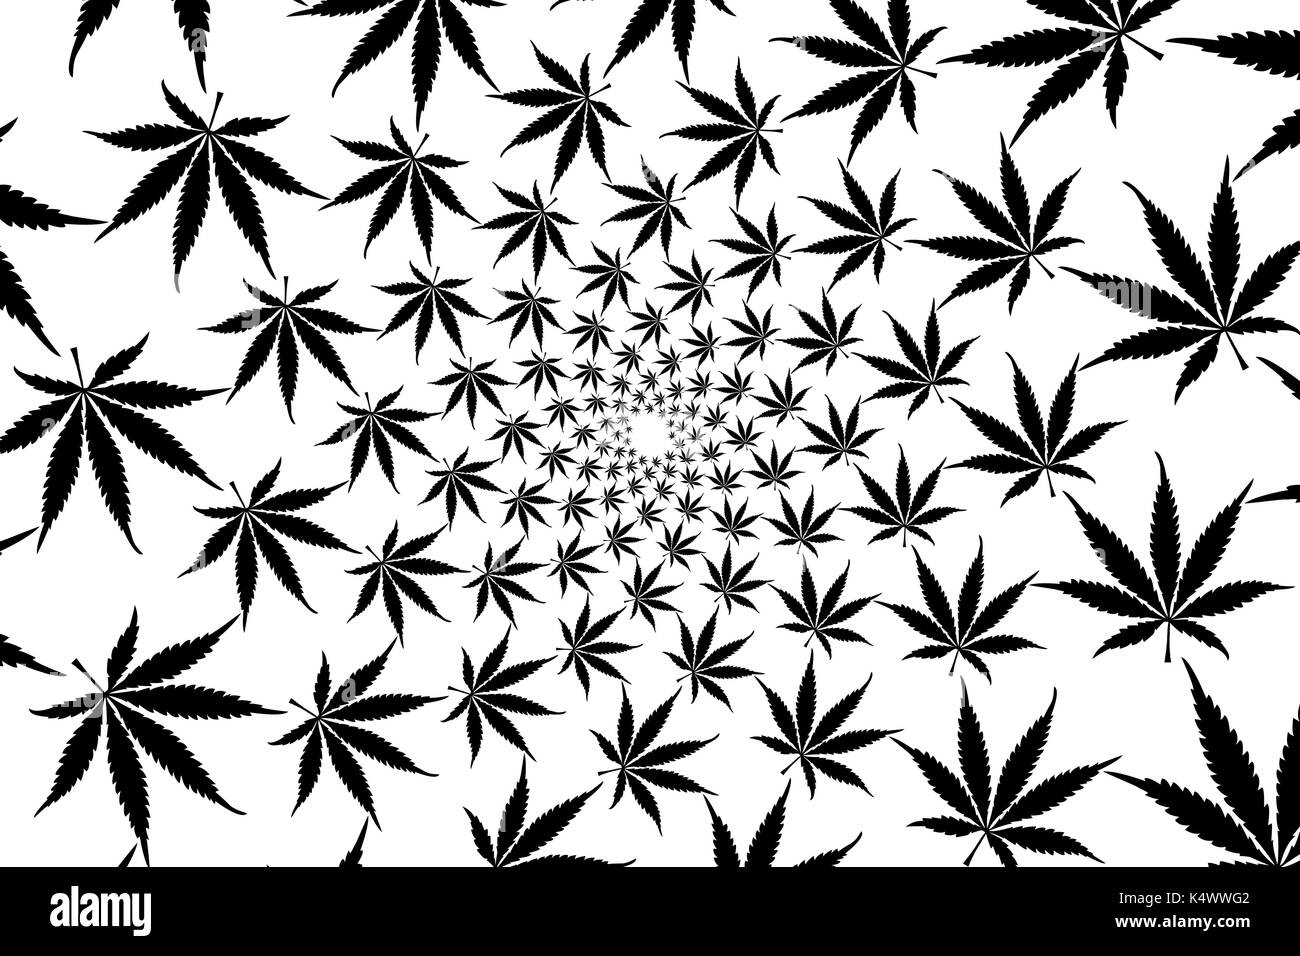 Black Marijuana Leaves Vector Pattern Cannabis Plant Background Stock Vector Image Art Alamy